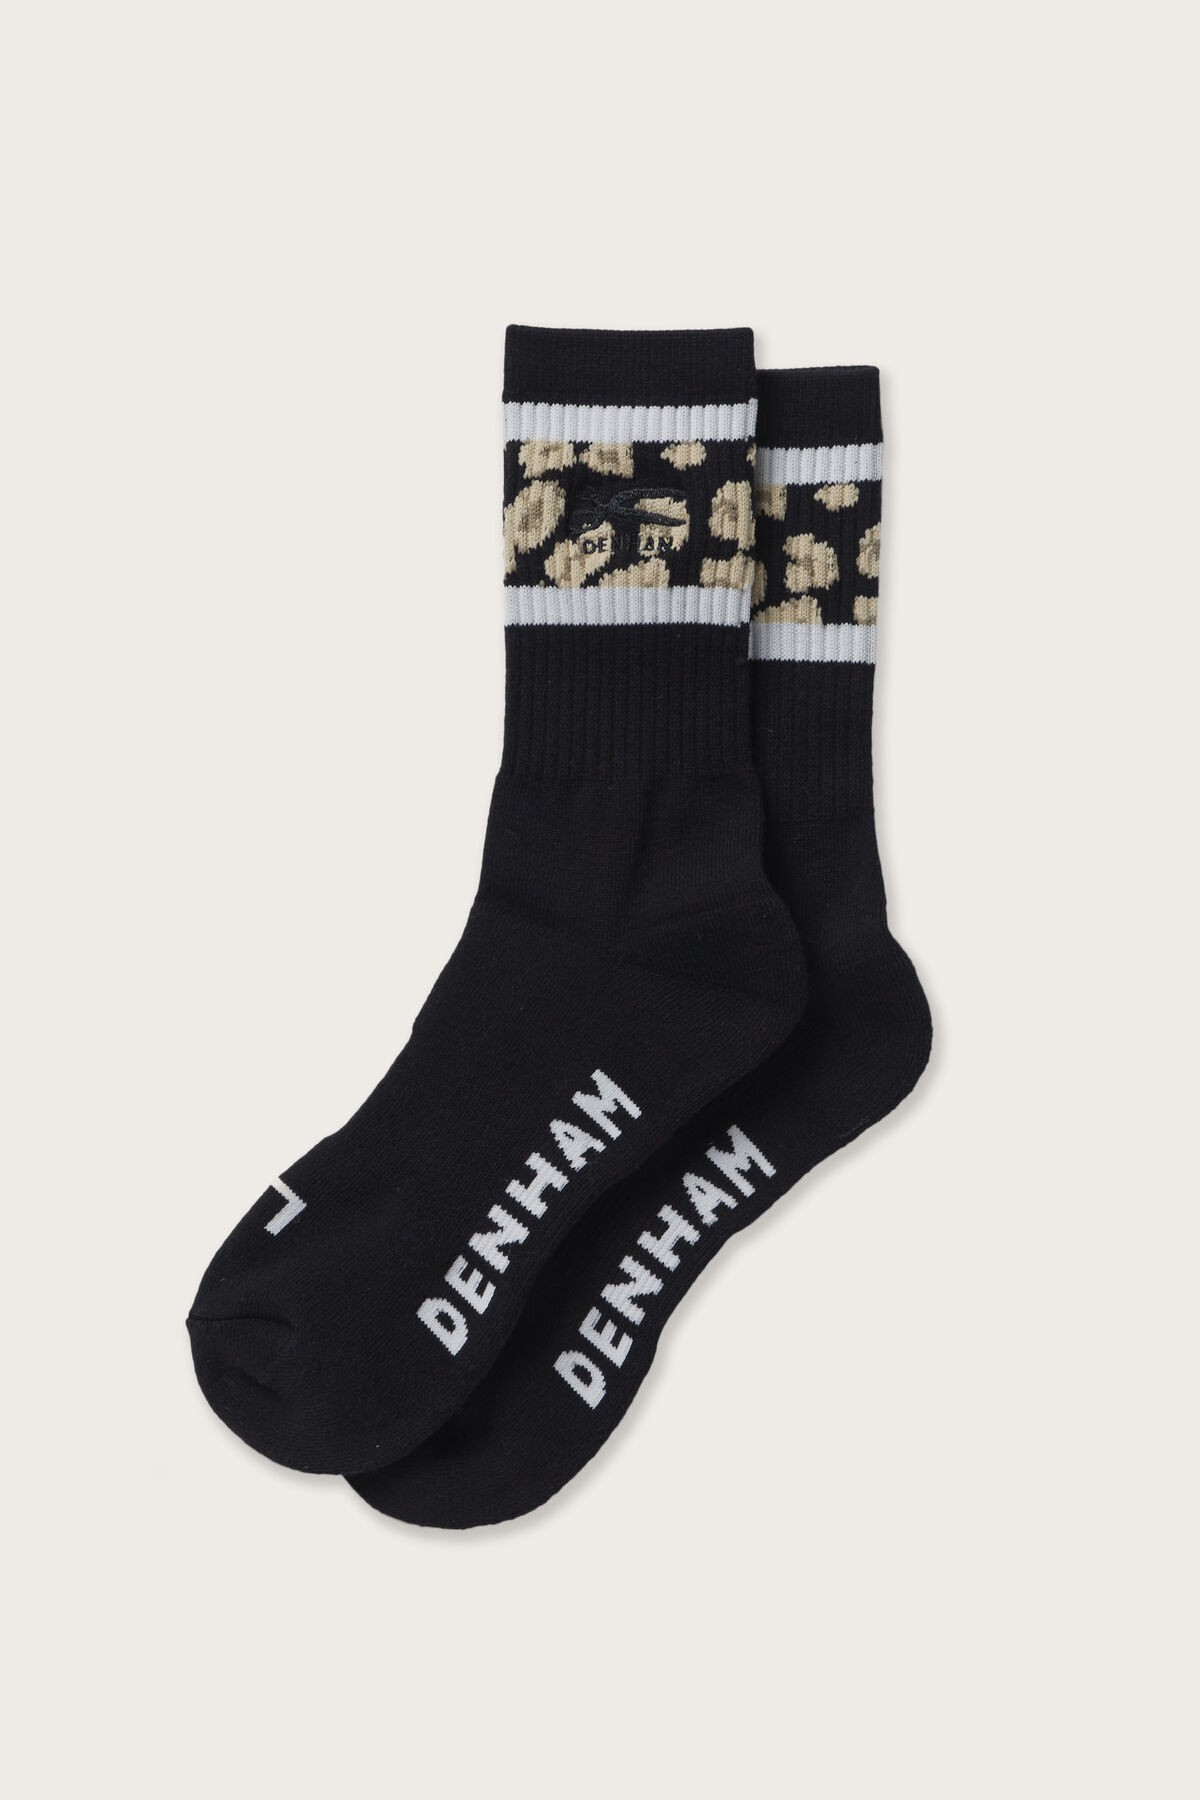 3PACK SOX Leopard Print - Japanese Capsule Collection